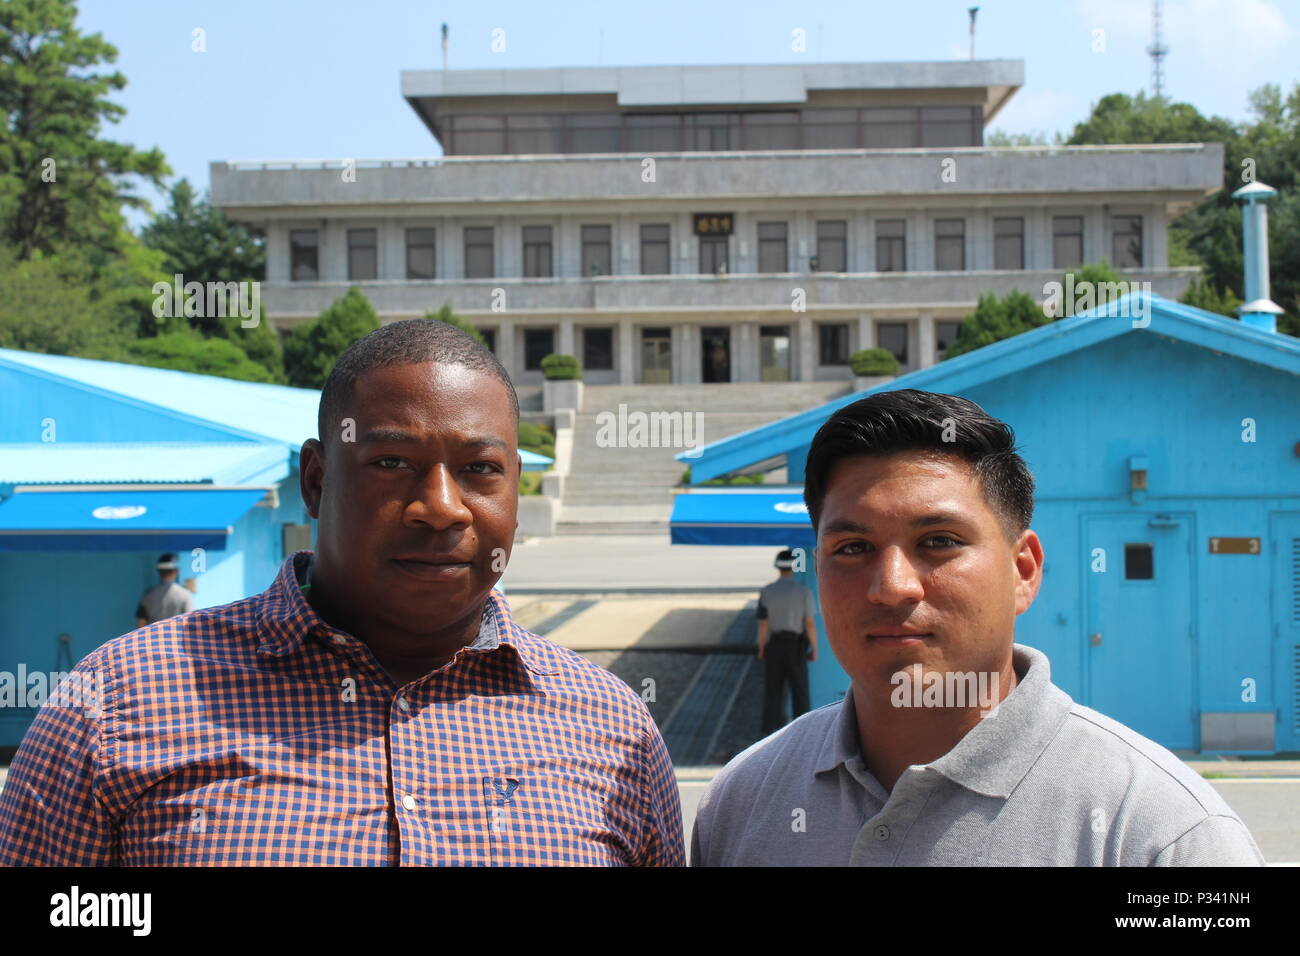 """Sgt. Byron Nunn and Spc. Salomn Garcia-Padilla, Forward Support Company J, 2nd Battalion, 8th Cavalry Regiment """"Stallions,"""" 1st Armored Brigade Combat Team, 1st Cavalry Division, visit the Joint Security Area in the Demilitarized Zone separating North and South Korea, as part of a tour Aug. 16. Soldiers visited the JSA, Camp Bonifas, the """"Bridge of No Return"""" and several other points of interest, during the tour. (U.S. Army photo by Spc. Jeremy Reuse, 2nd Battalion, 8th Cavalry Regiment, 1st Armored Brigade Combat Team, 1st Cav. Div.) Stock Photo"""